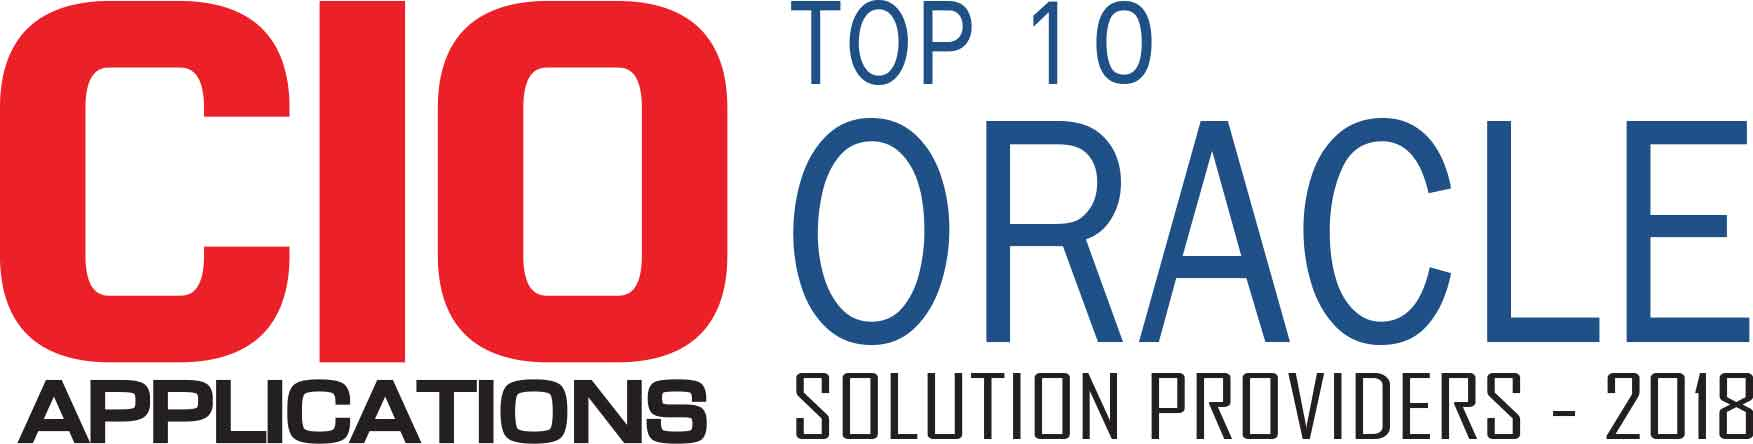 Top 10 Oracle Solution Companies - 2018